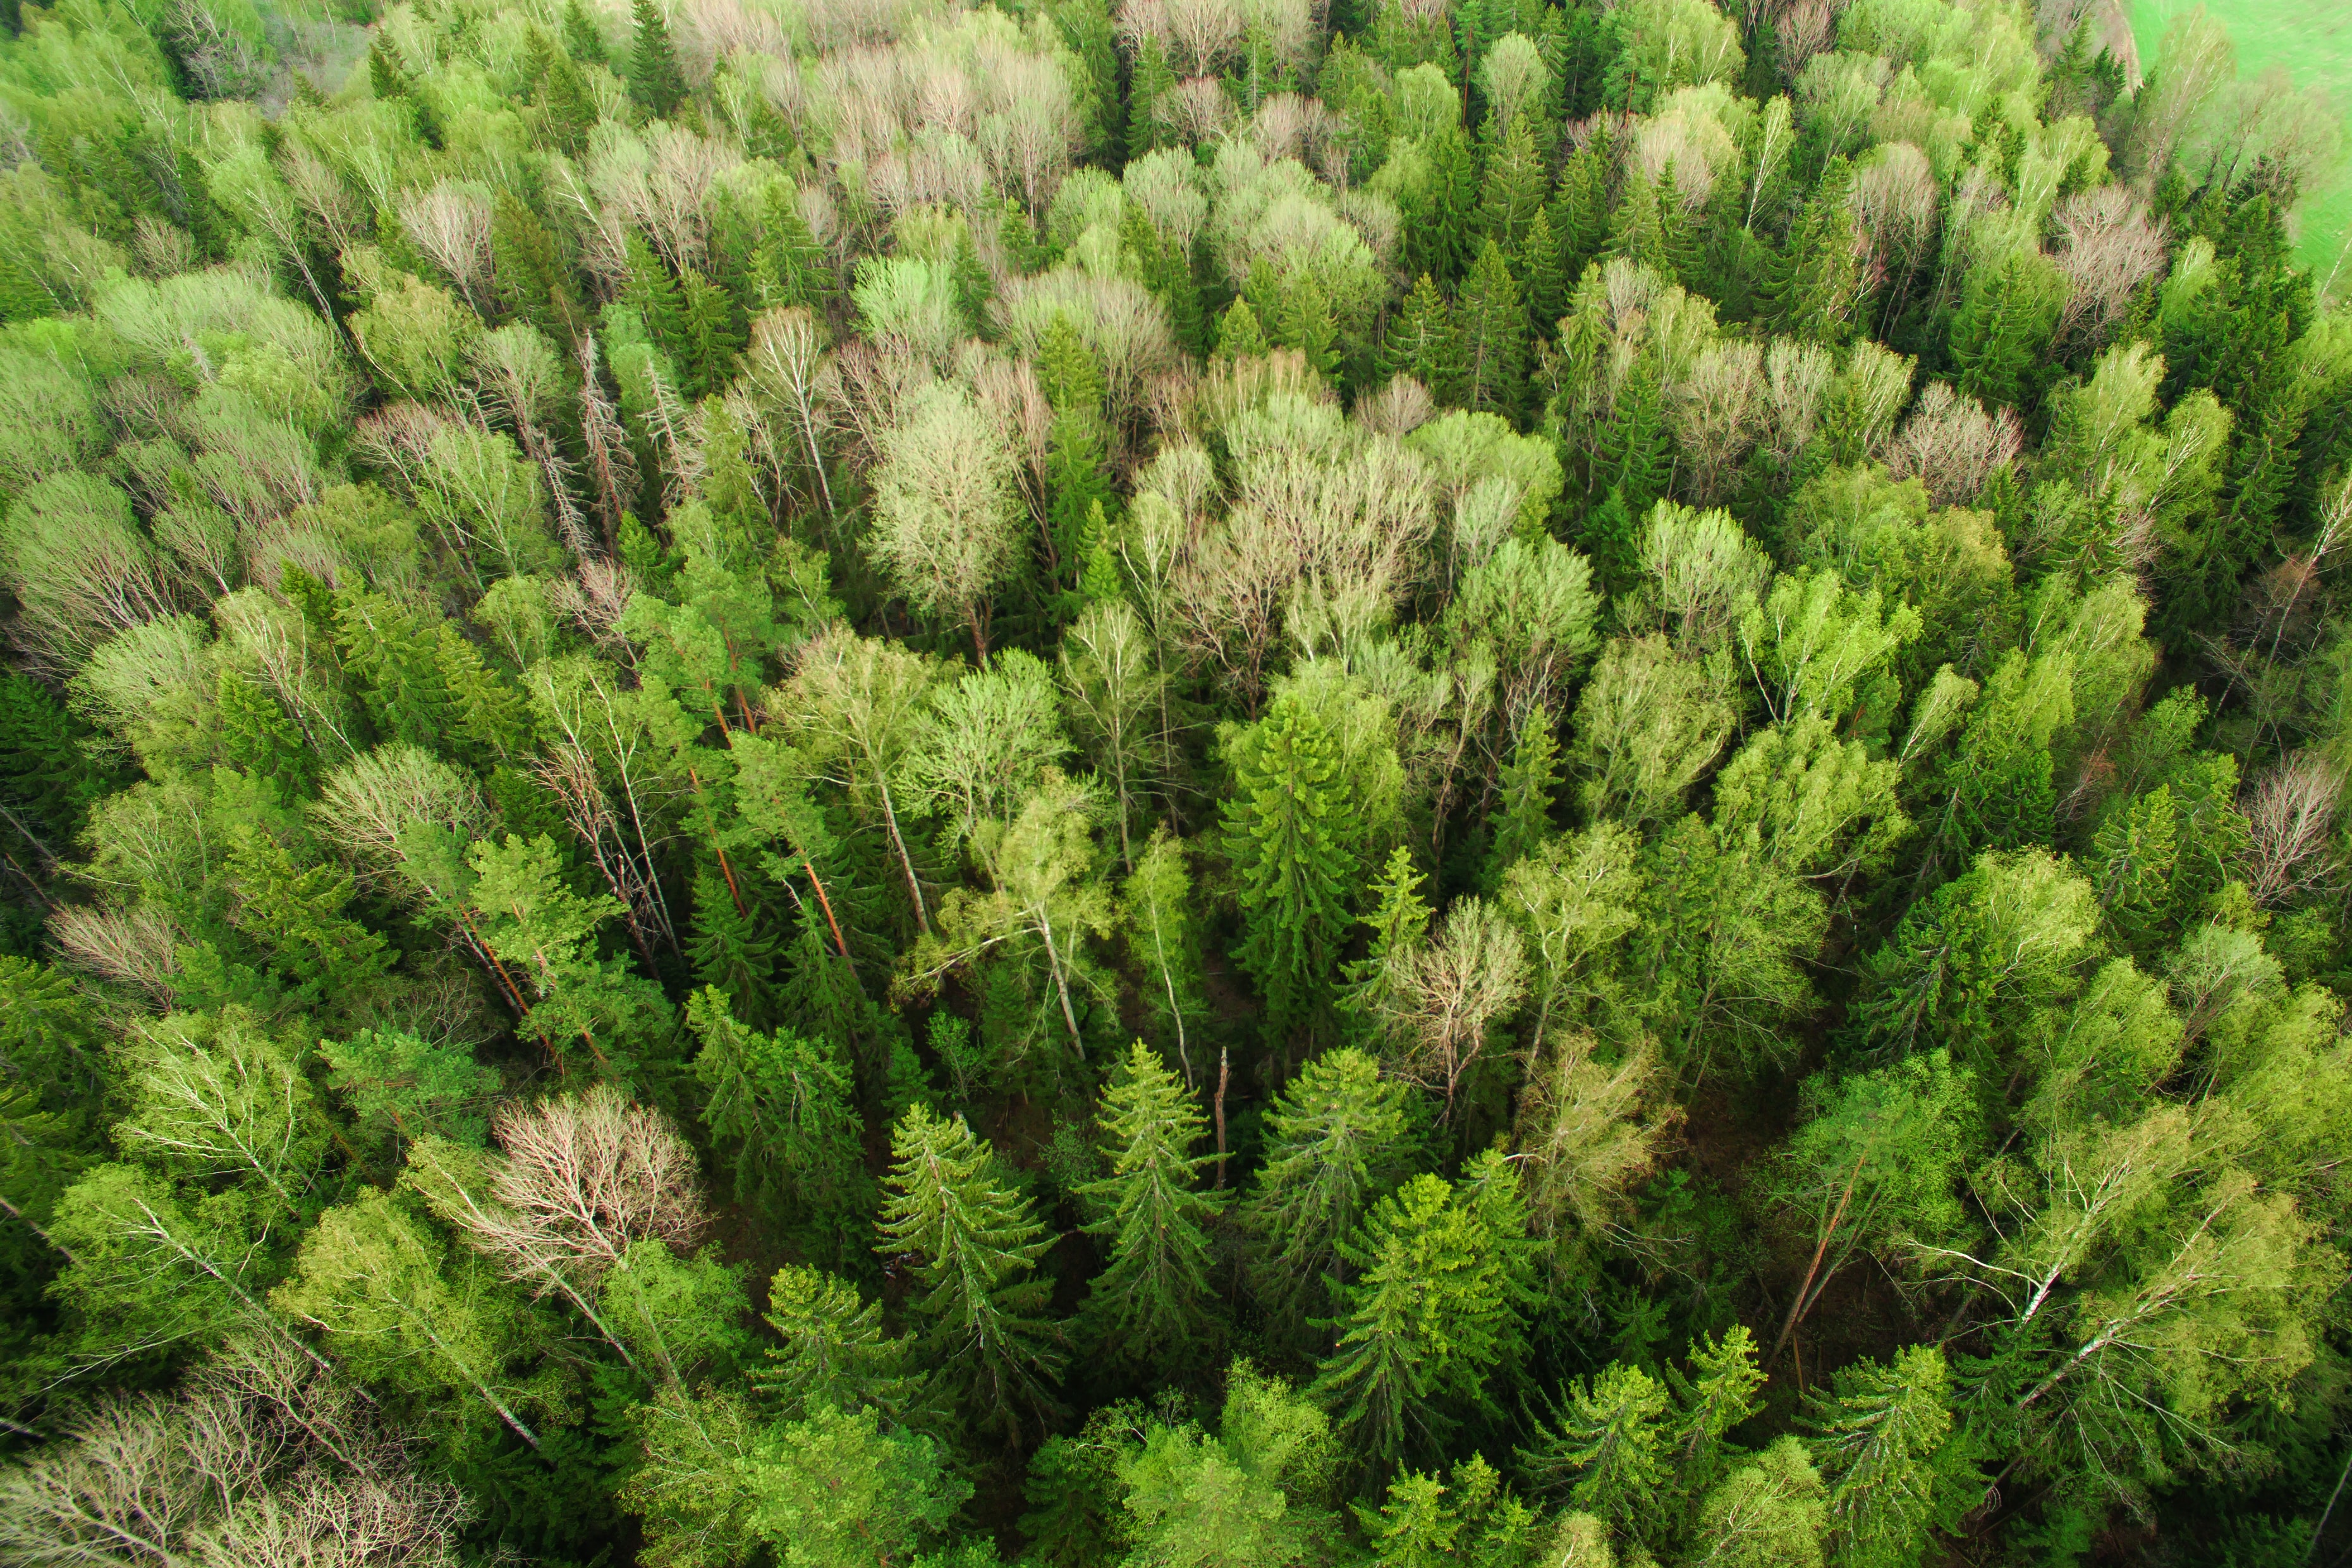 A drone shot of a green forest in Russia